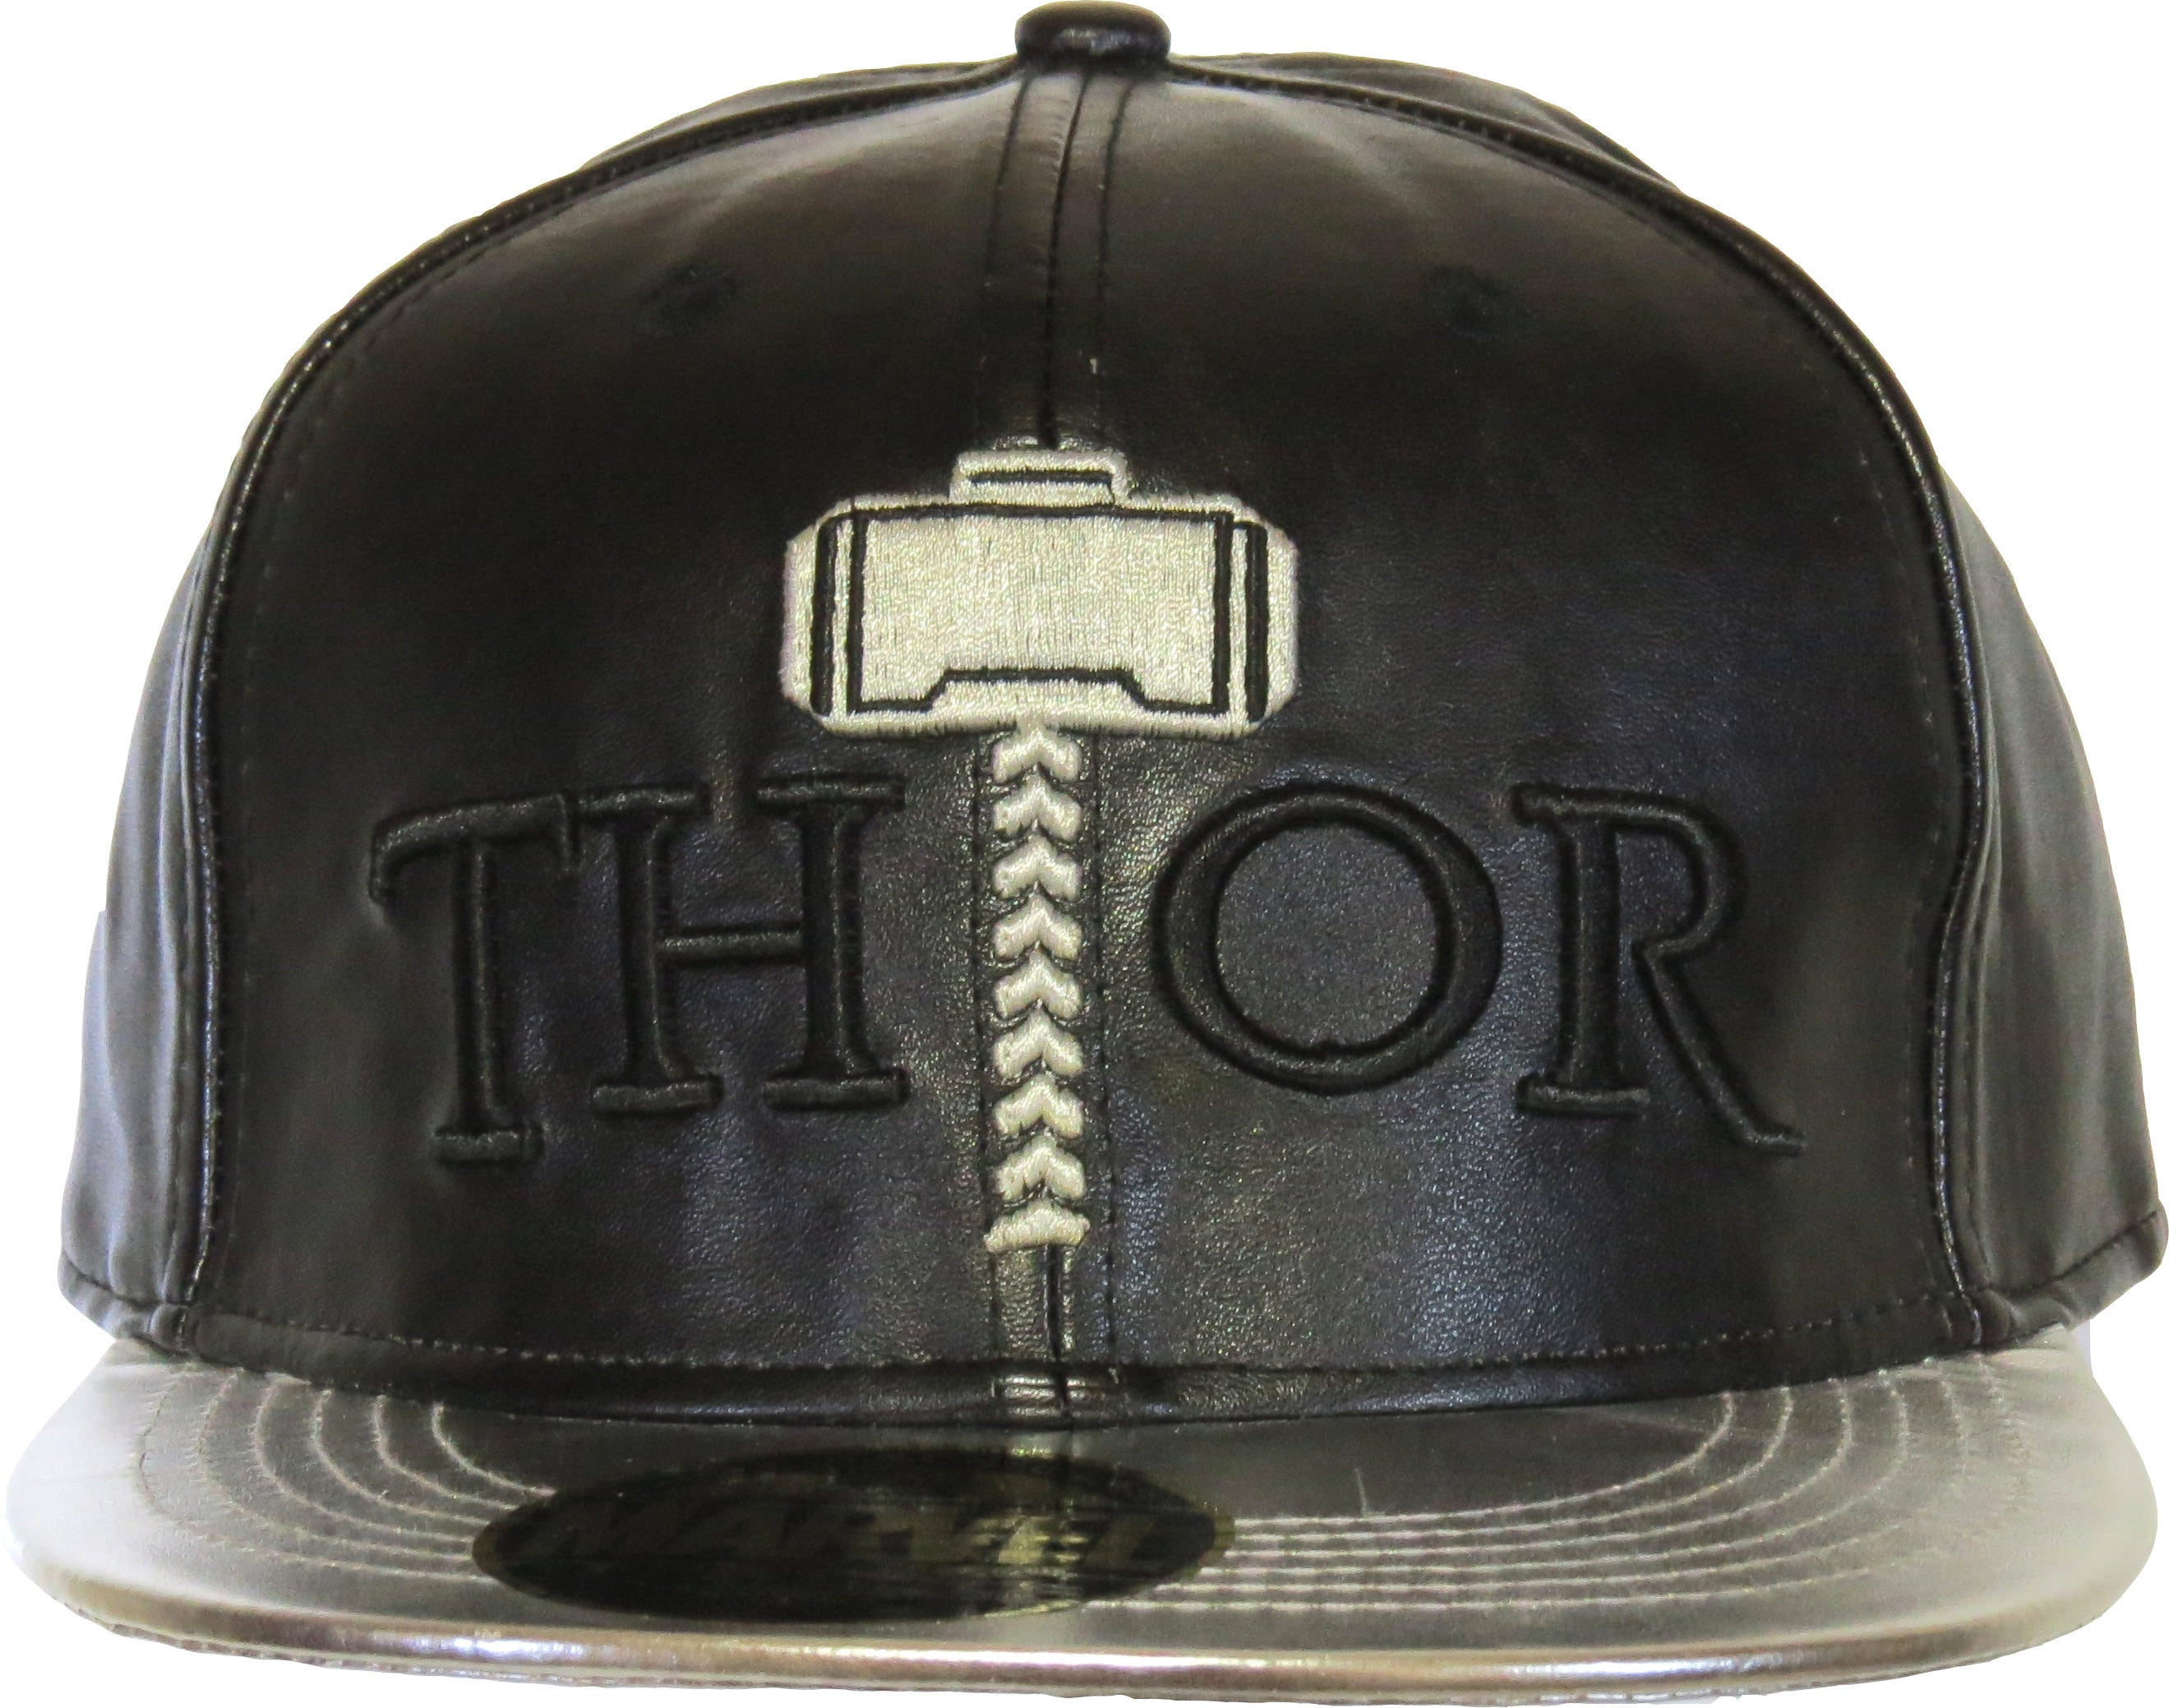 hot sale online d9c31 1a237 ... Marvel Comics Thor God Of Thunder Black Snapback Cap - pumpheadgear,  baseball caps ...